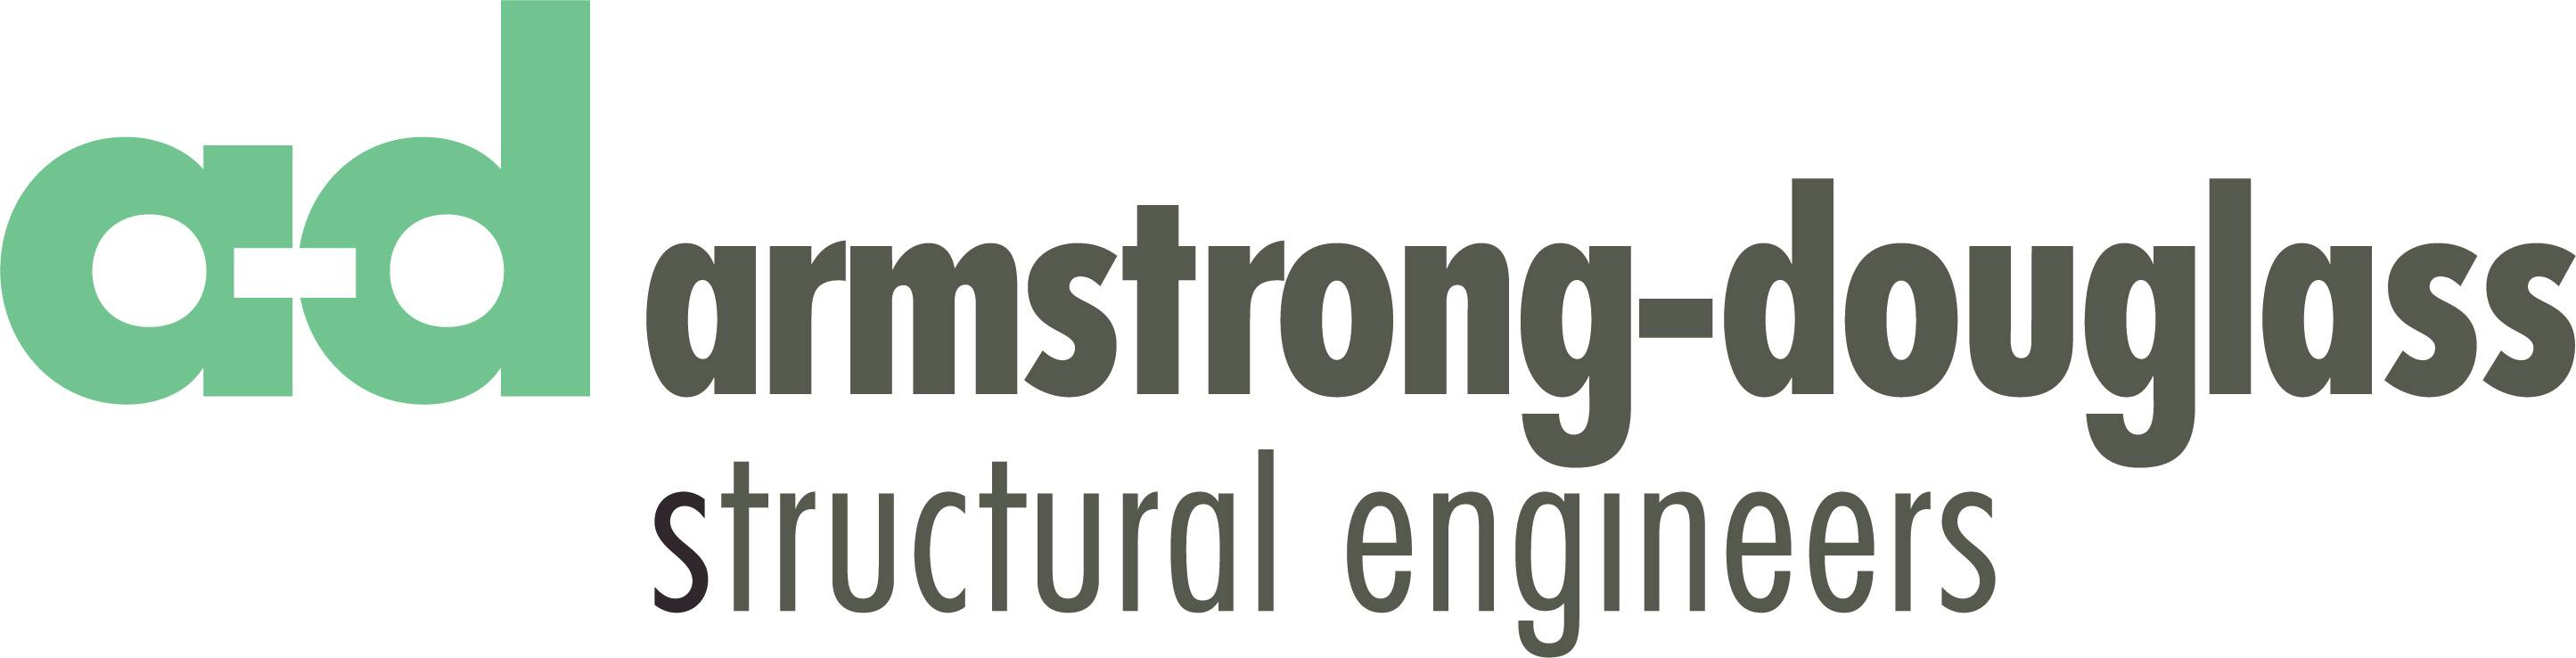 2018 WiA Conference - Armstrong logo